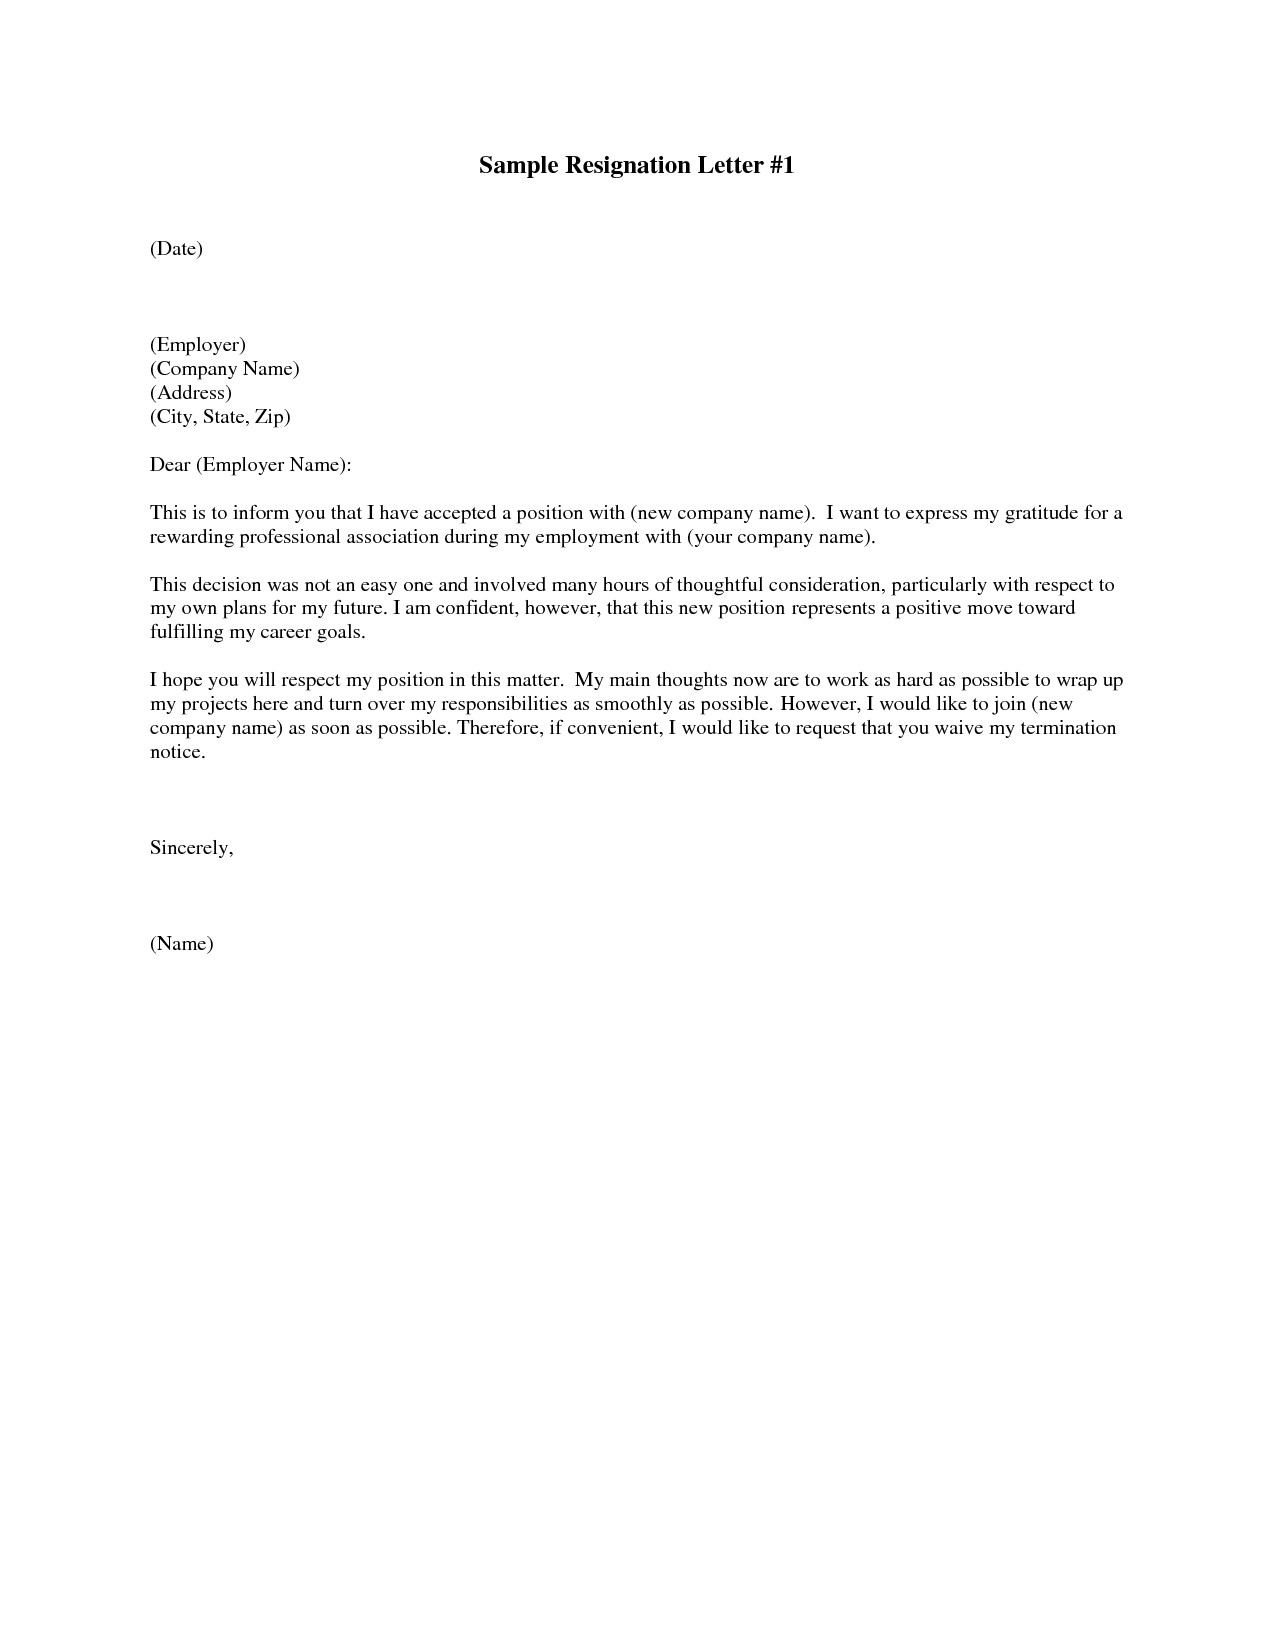 Letter Of Resignation Templates How to Write Easy Simple Resignation Letter Sample